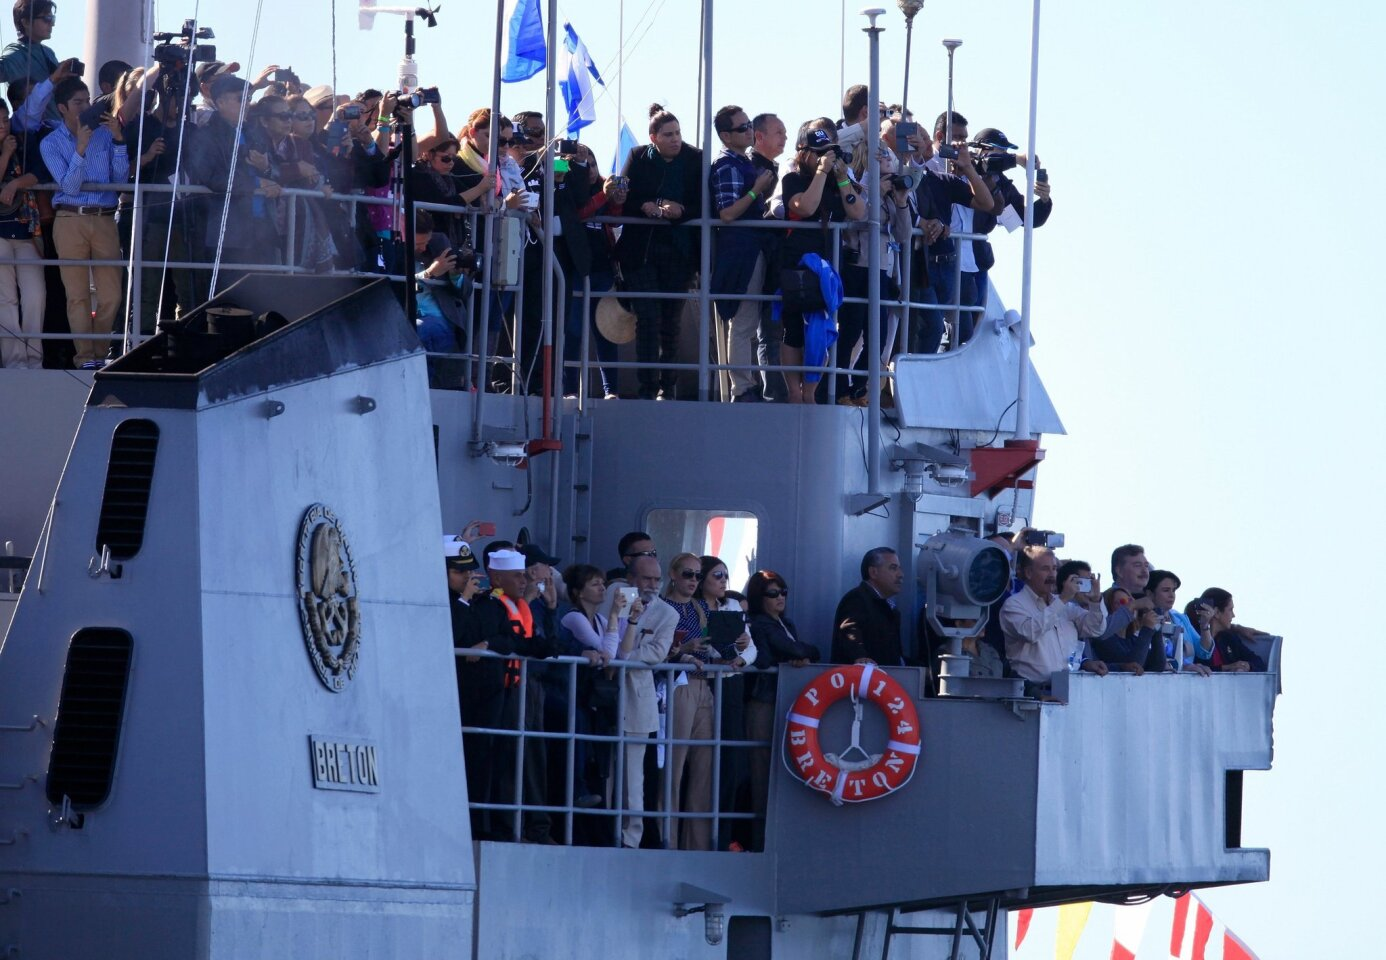 Spectators witness the sinking of the URIBE 121 former patrol vessel on Saturday from PO124 Breton off the coast of Rosarito Beach.